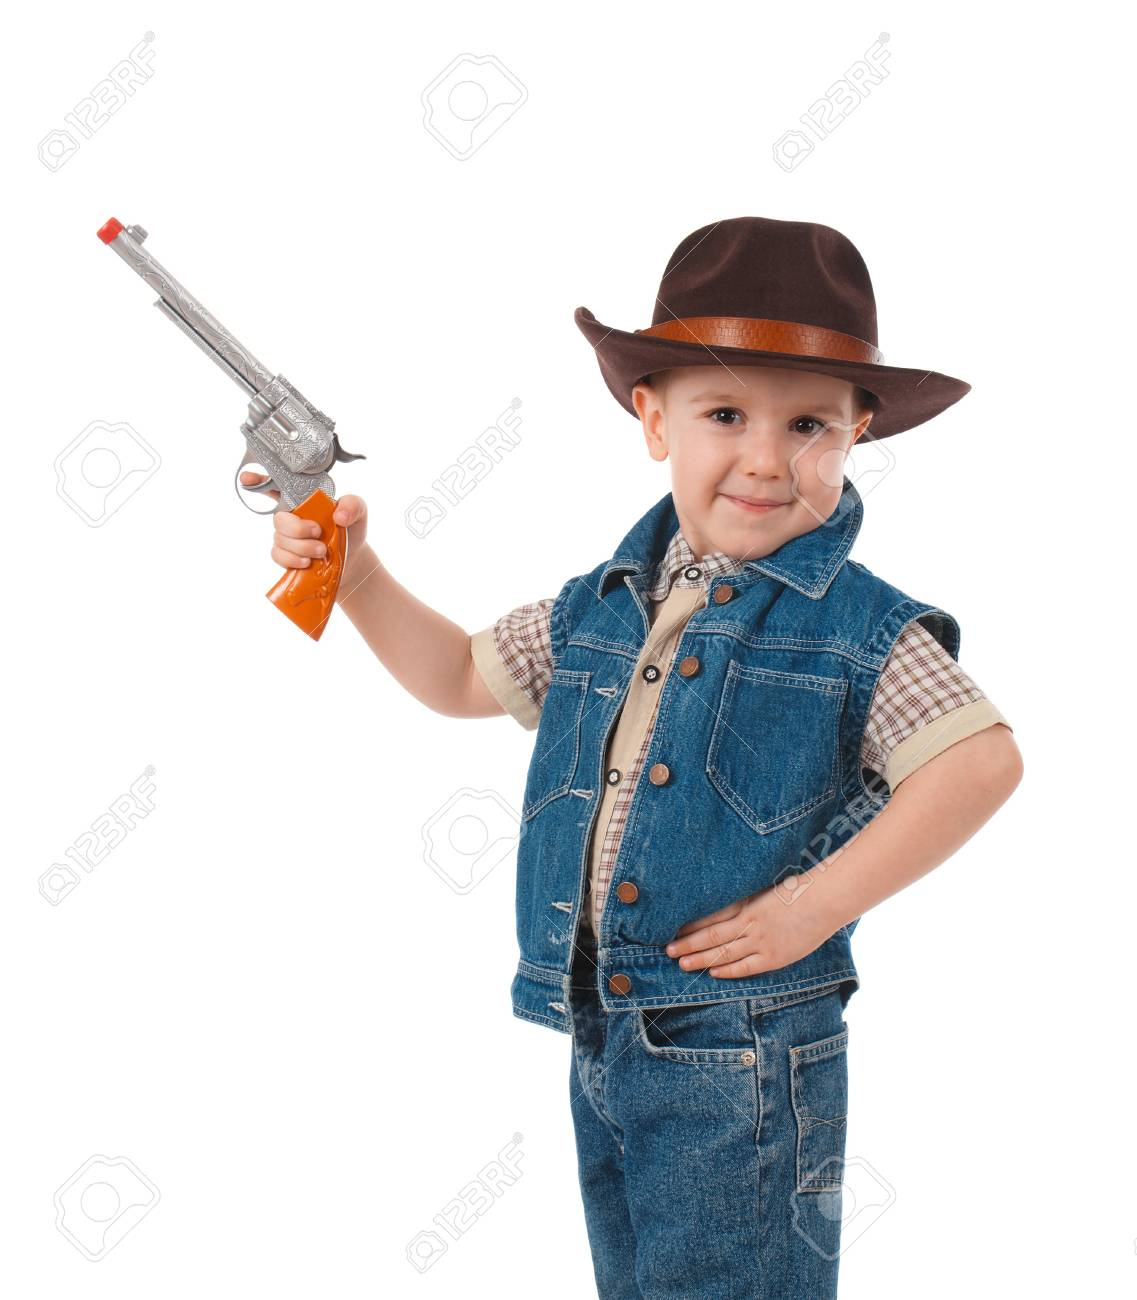 ee107e5dbd0f8 little boy wearing a cowboy hat a over white background Stock Photo -  9580504